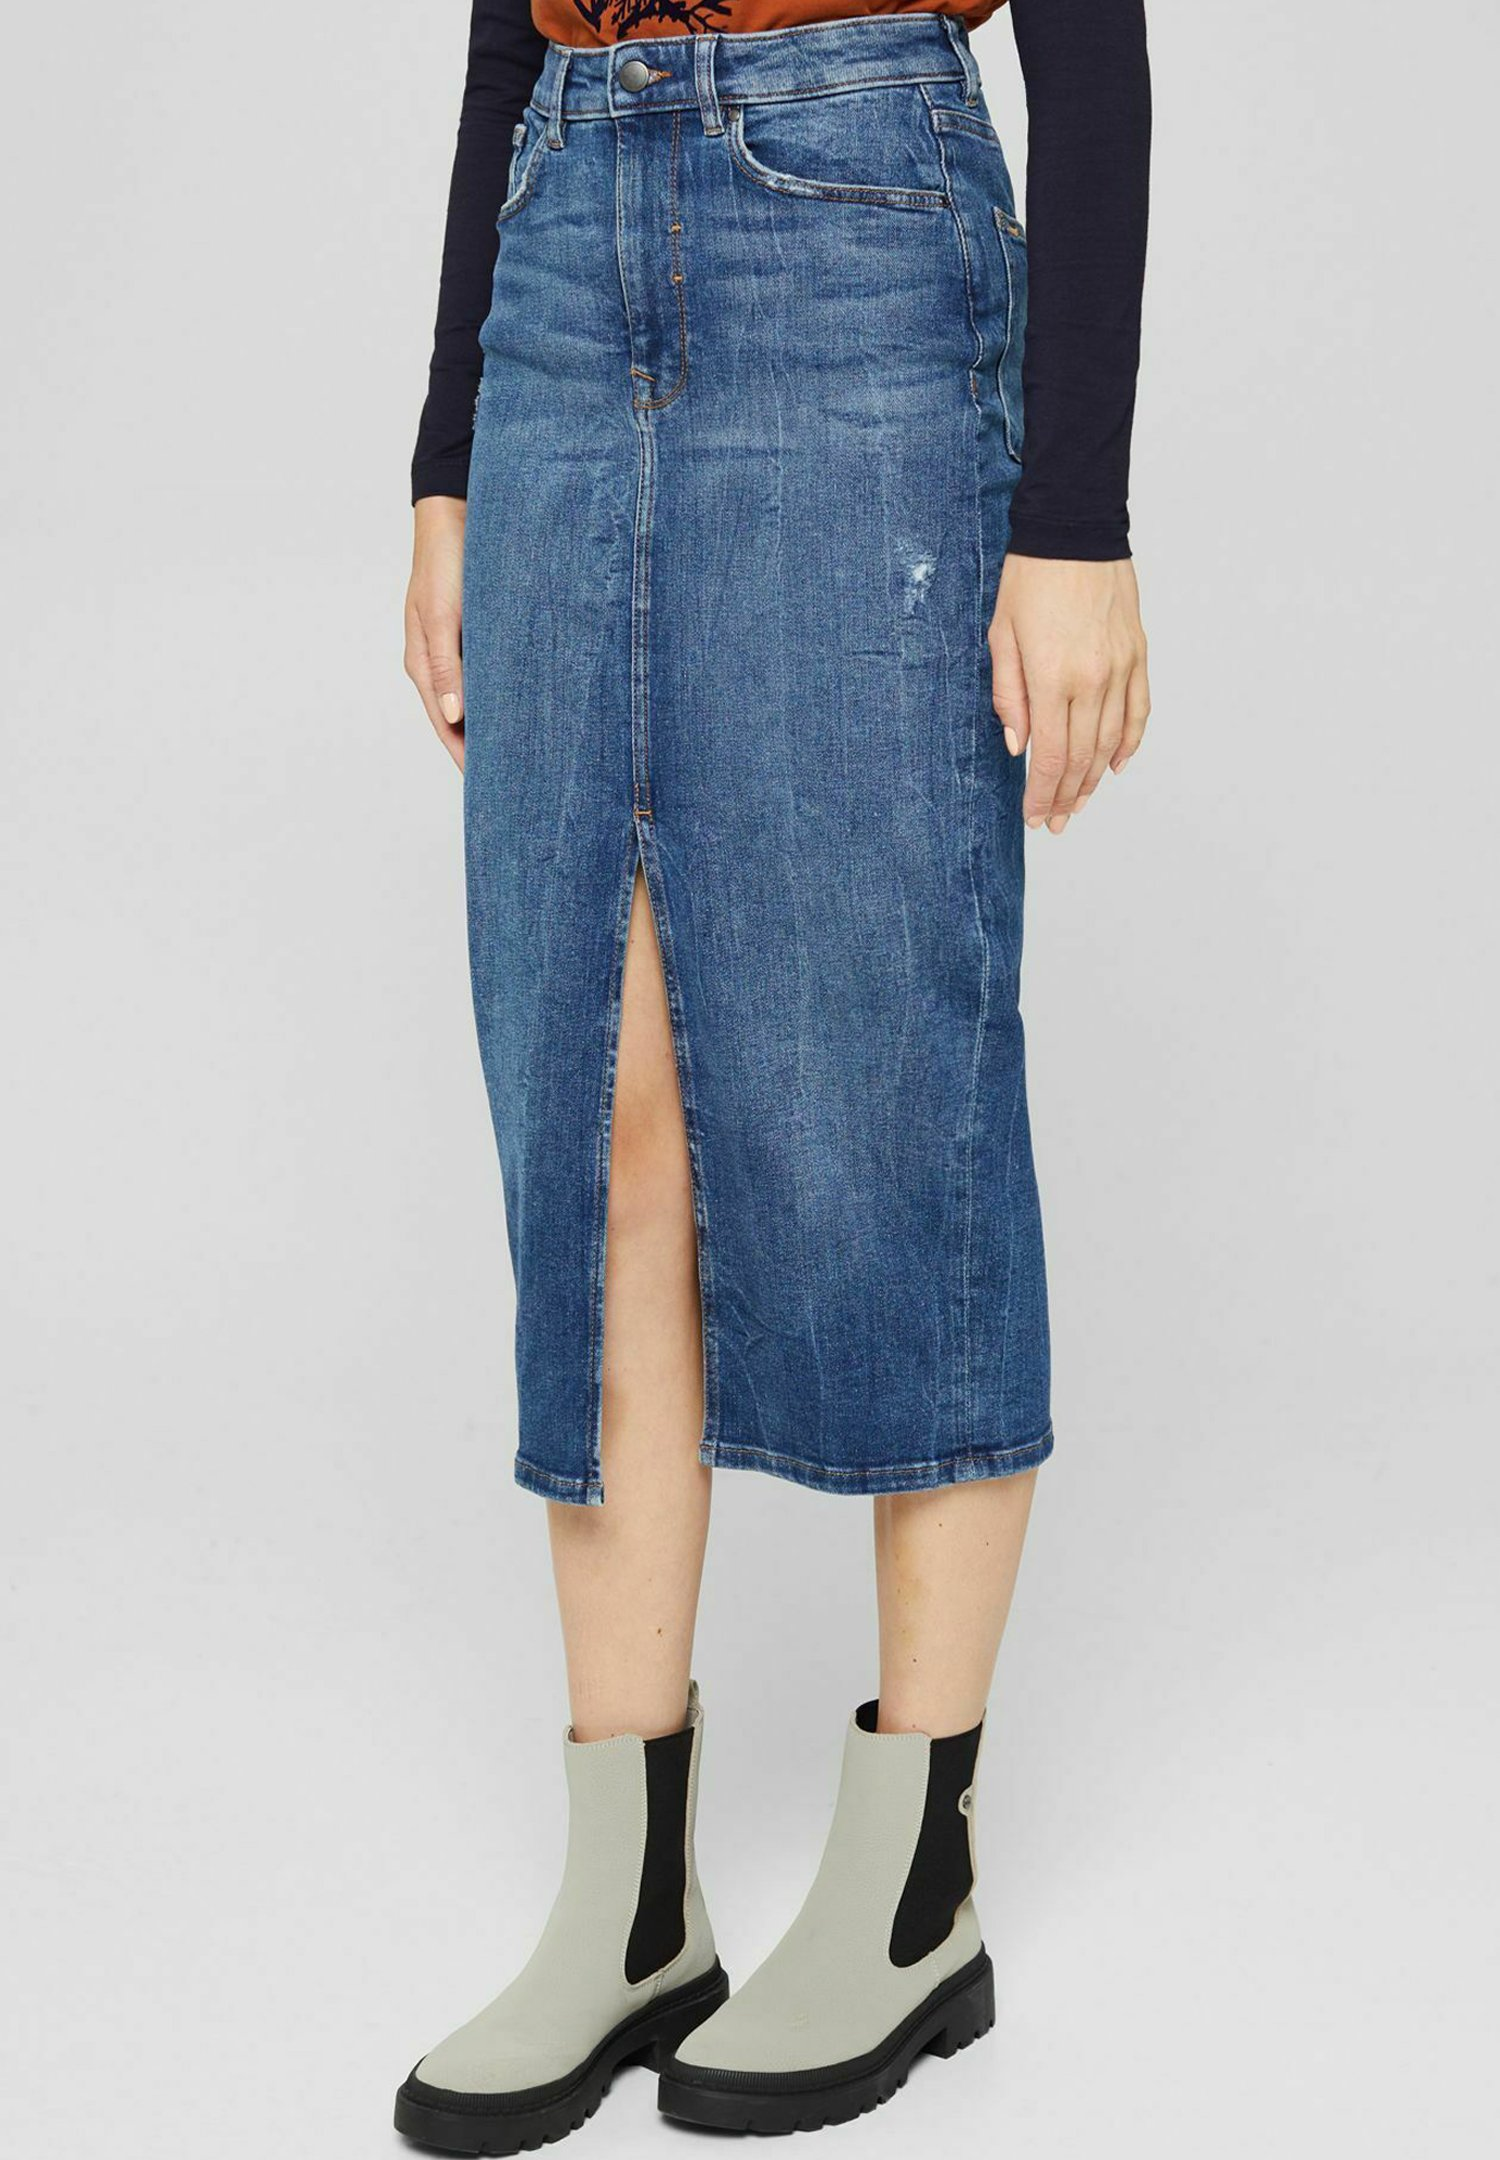 Femme STRAIGHT FIT - Jupe crayon